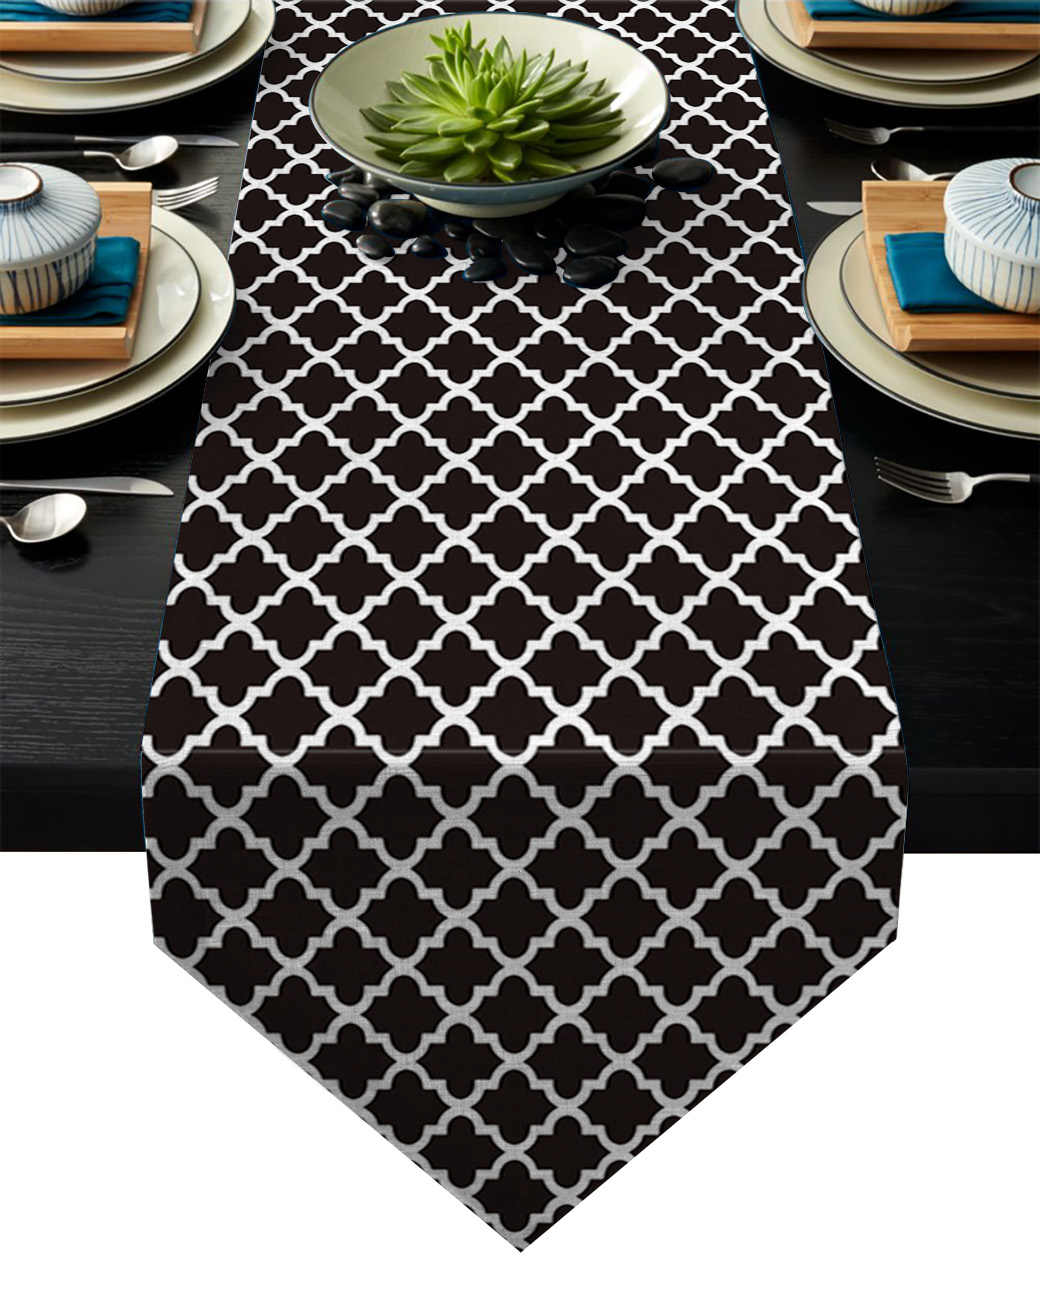 Modern Morocco Black White Table Runners Kitchen Decor Flag Tablecloth Placemat Hotel Home Runner For Wedding Aliexpress